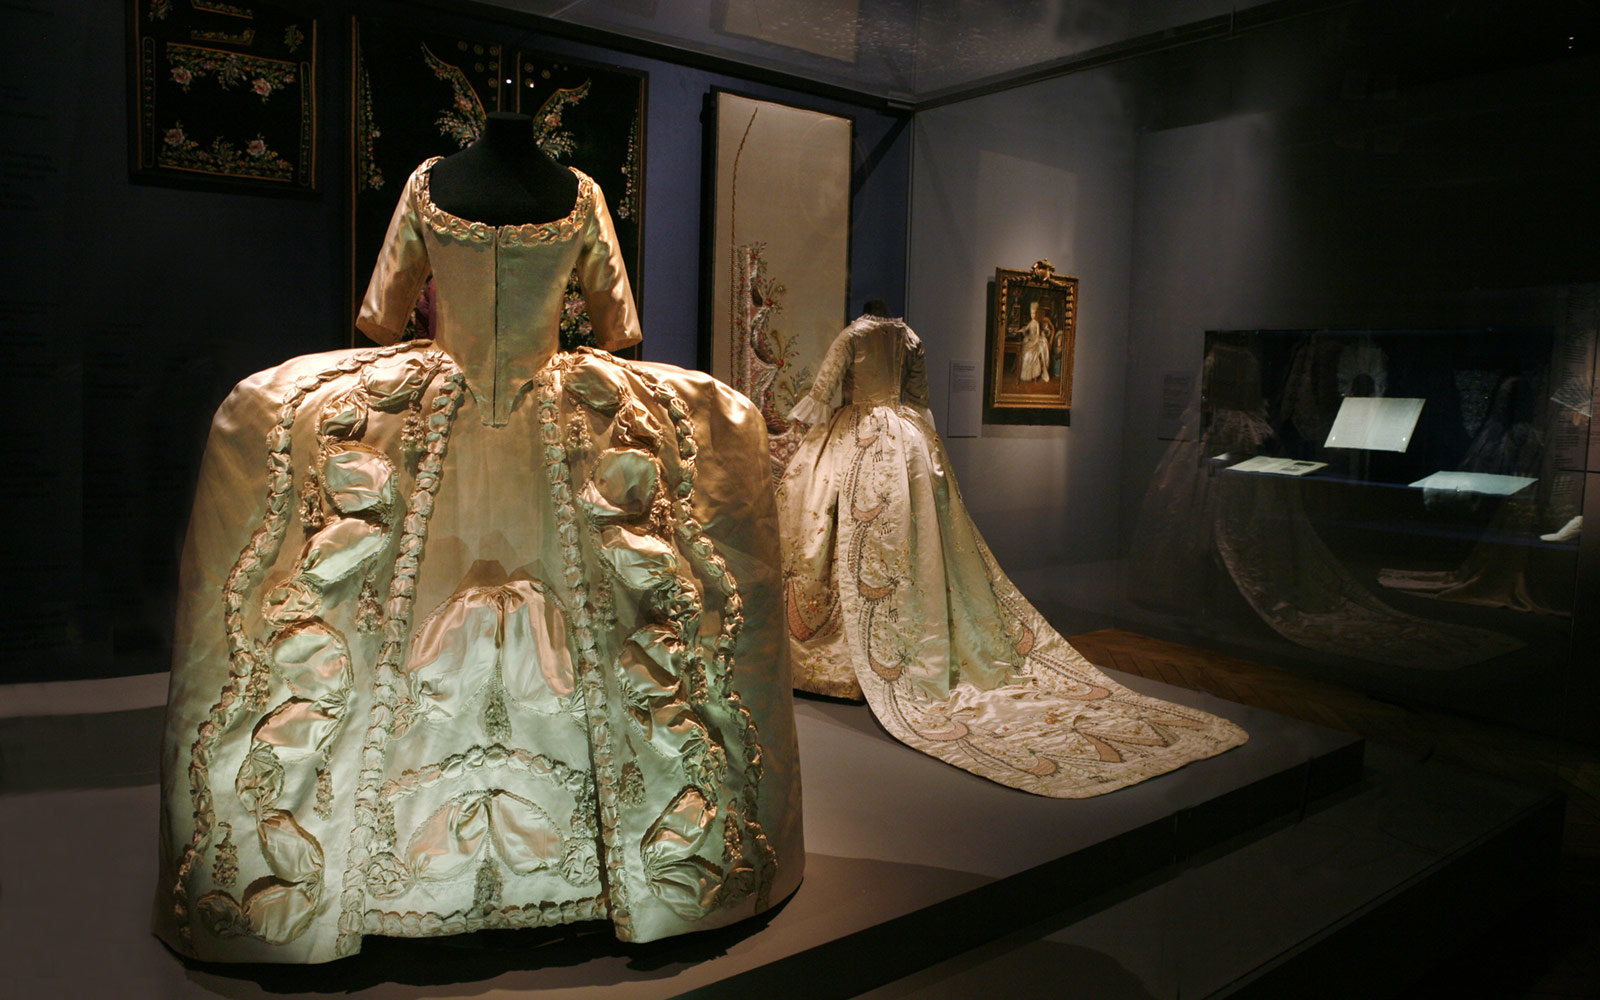 Pomp and Ceremonies of the Royal Court exhibition, Versailles, France